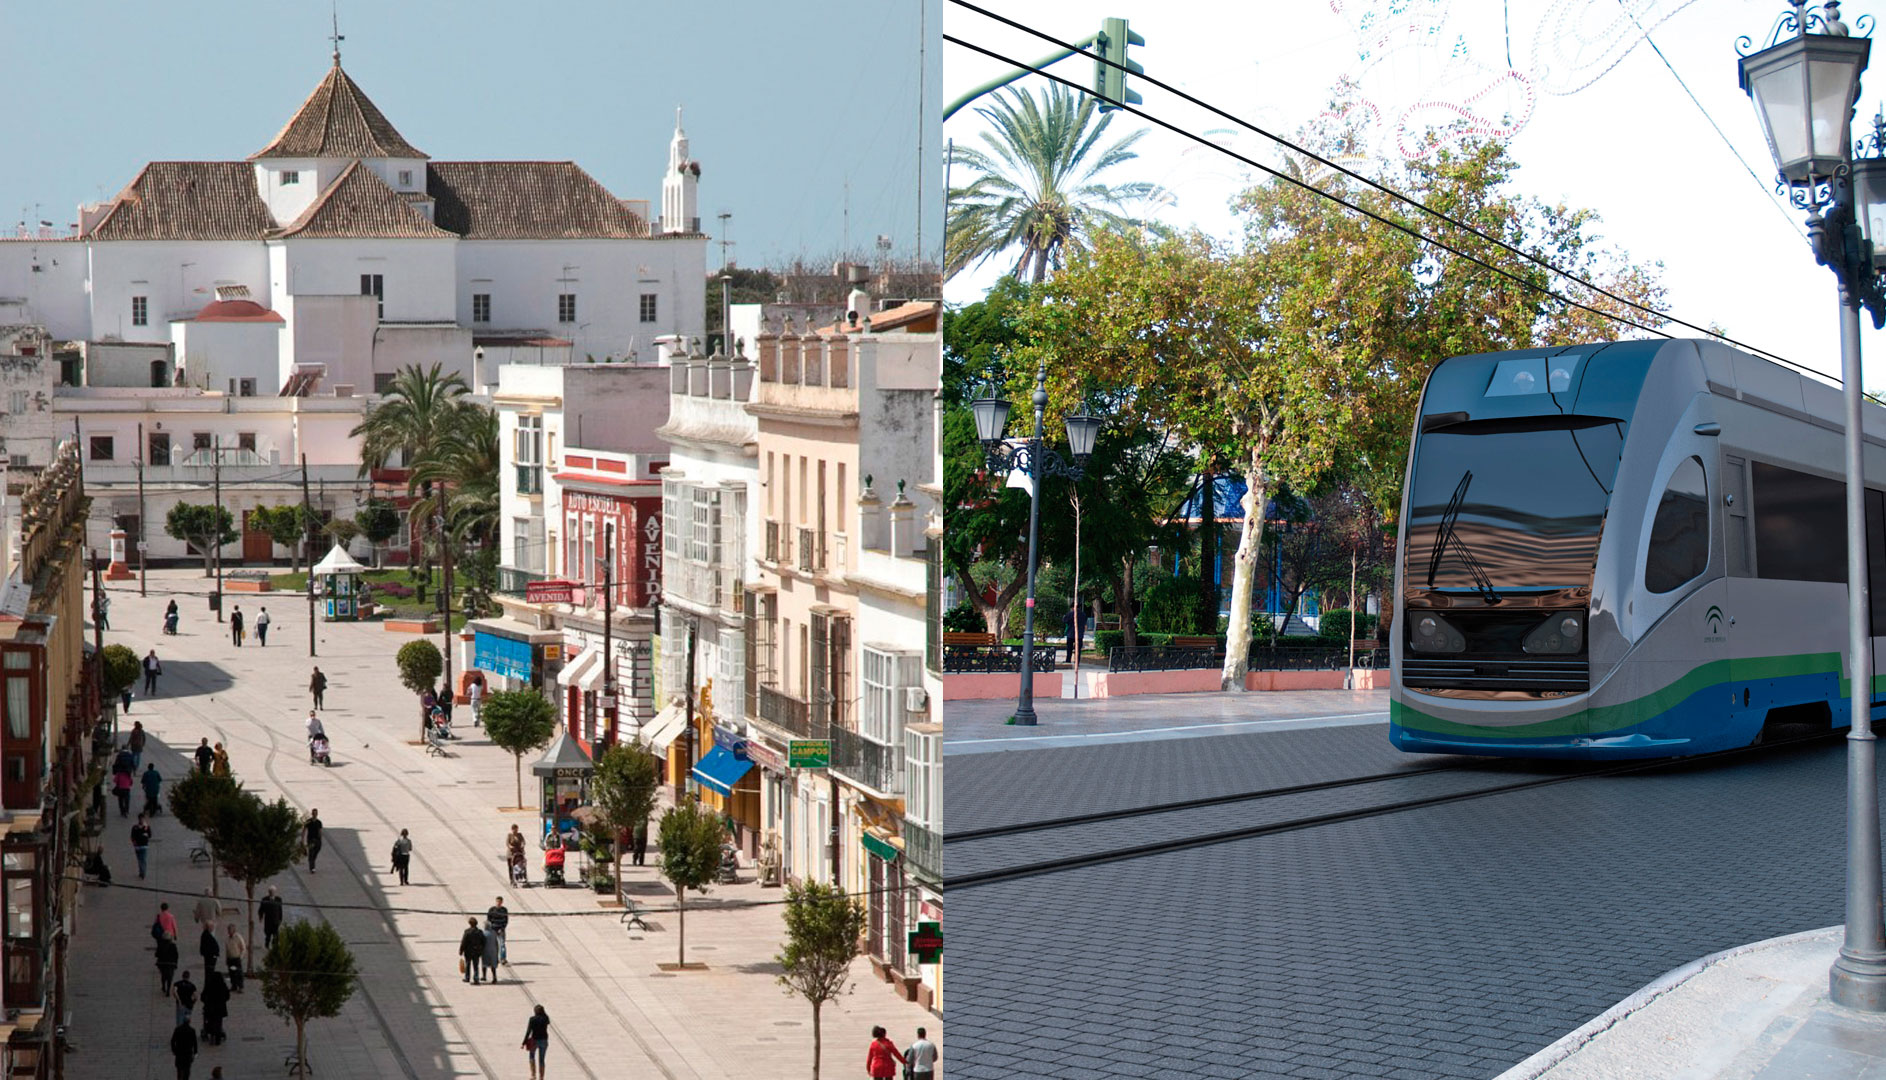 On the left, aerial view of Real Street, the main artery of San Fernando. On the right, a simulation of the the tram-way around the city.